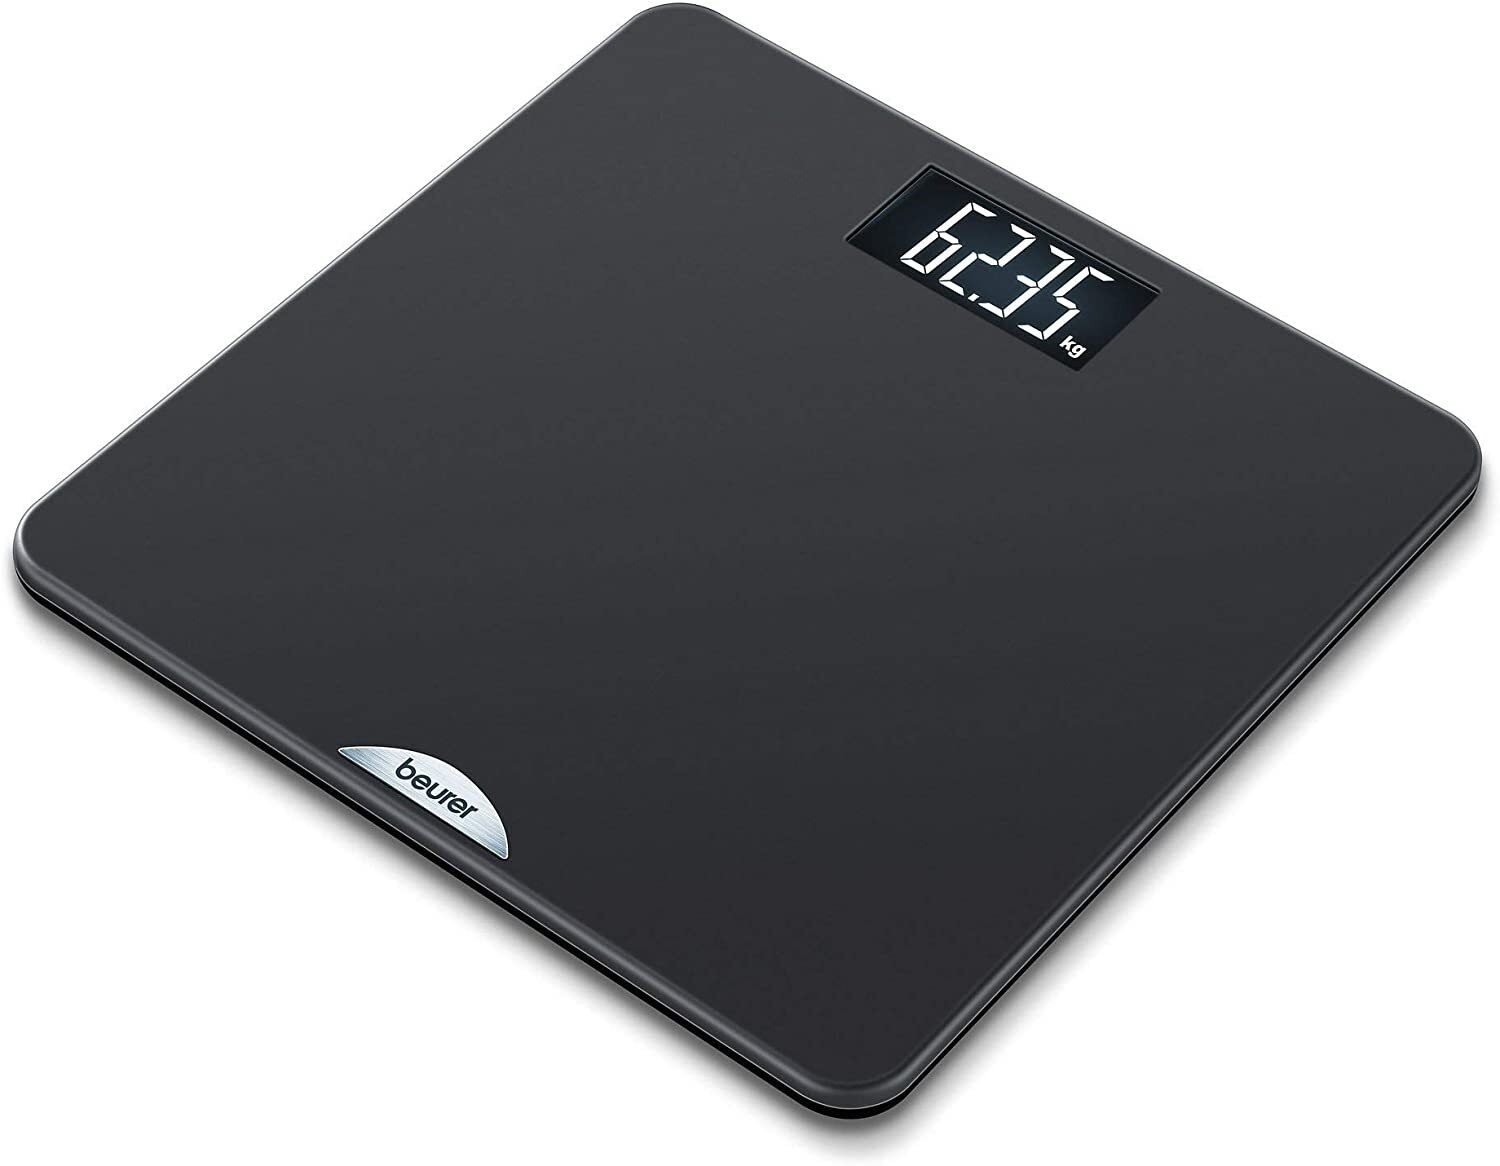 Beurer PS240 Personal Non Slip Bathroom Scale - Black